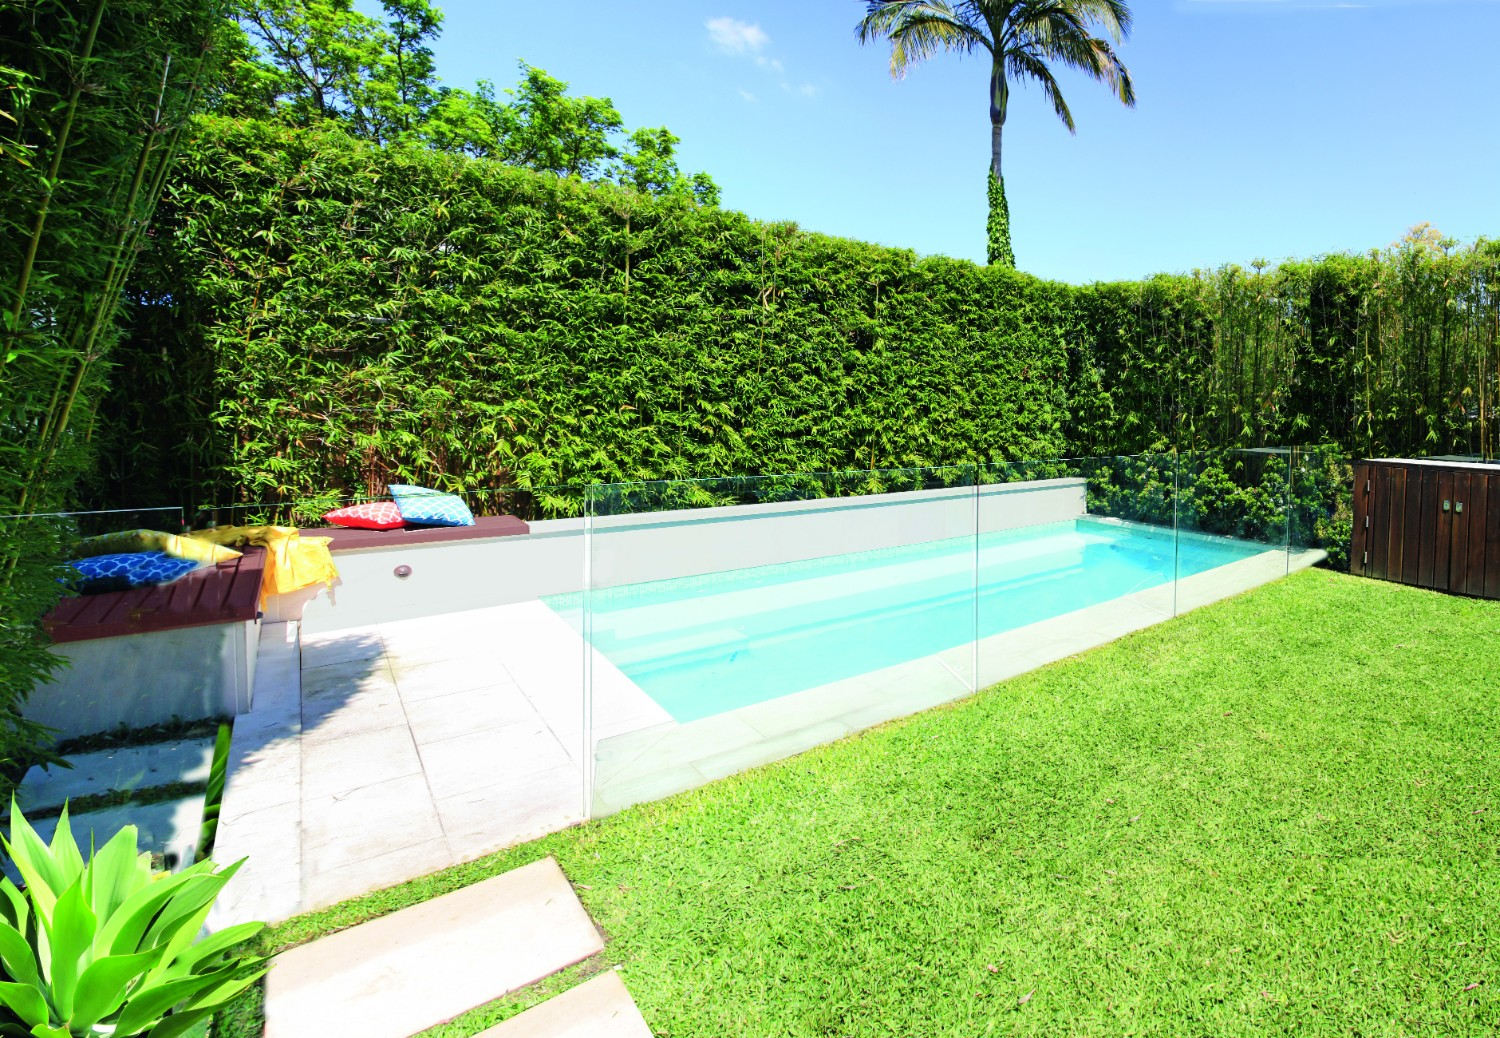 Screening plants: creating your outdoor sanctuary - pool design with glass fencing on one side and screening plants on the other